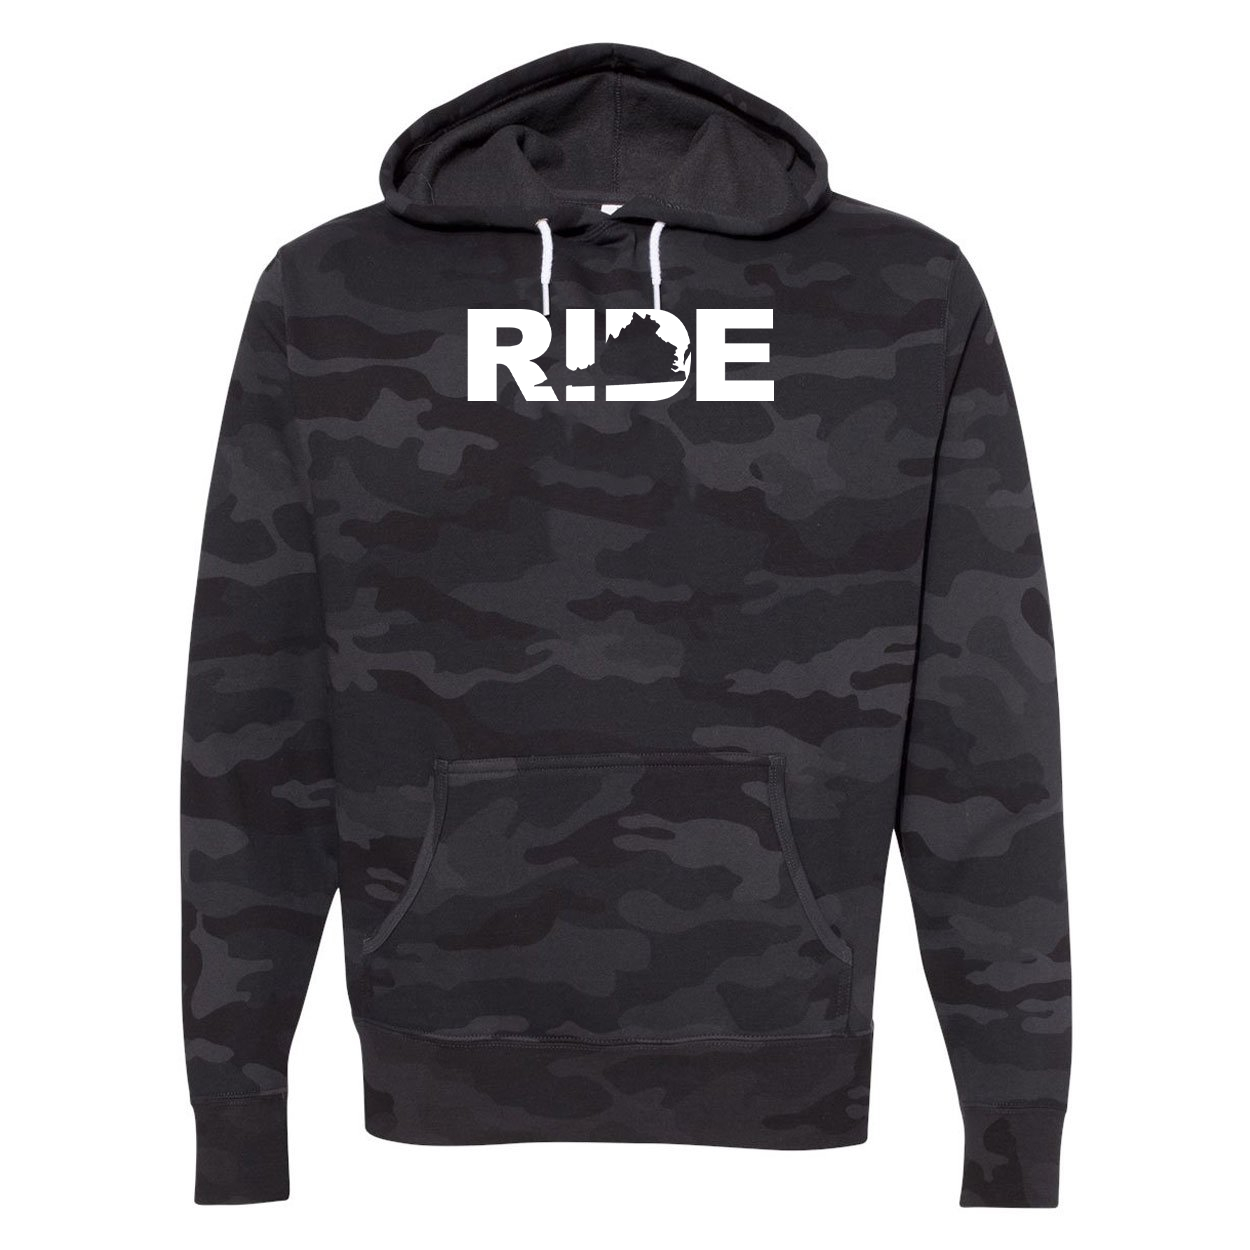 Ride Virginia Classic Unisex Hooded Sweatshirt Black Camo (White Logo)